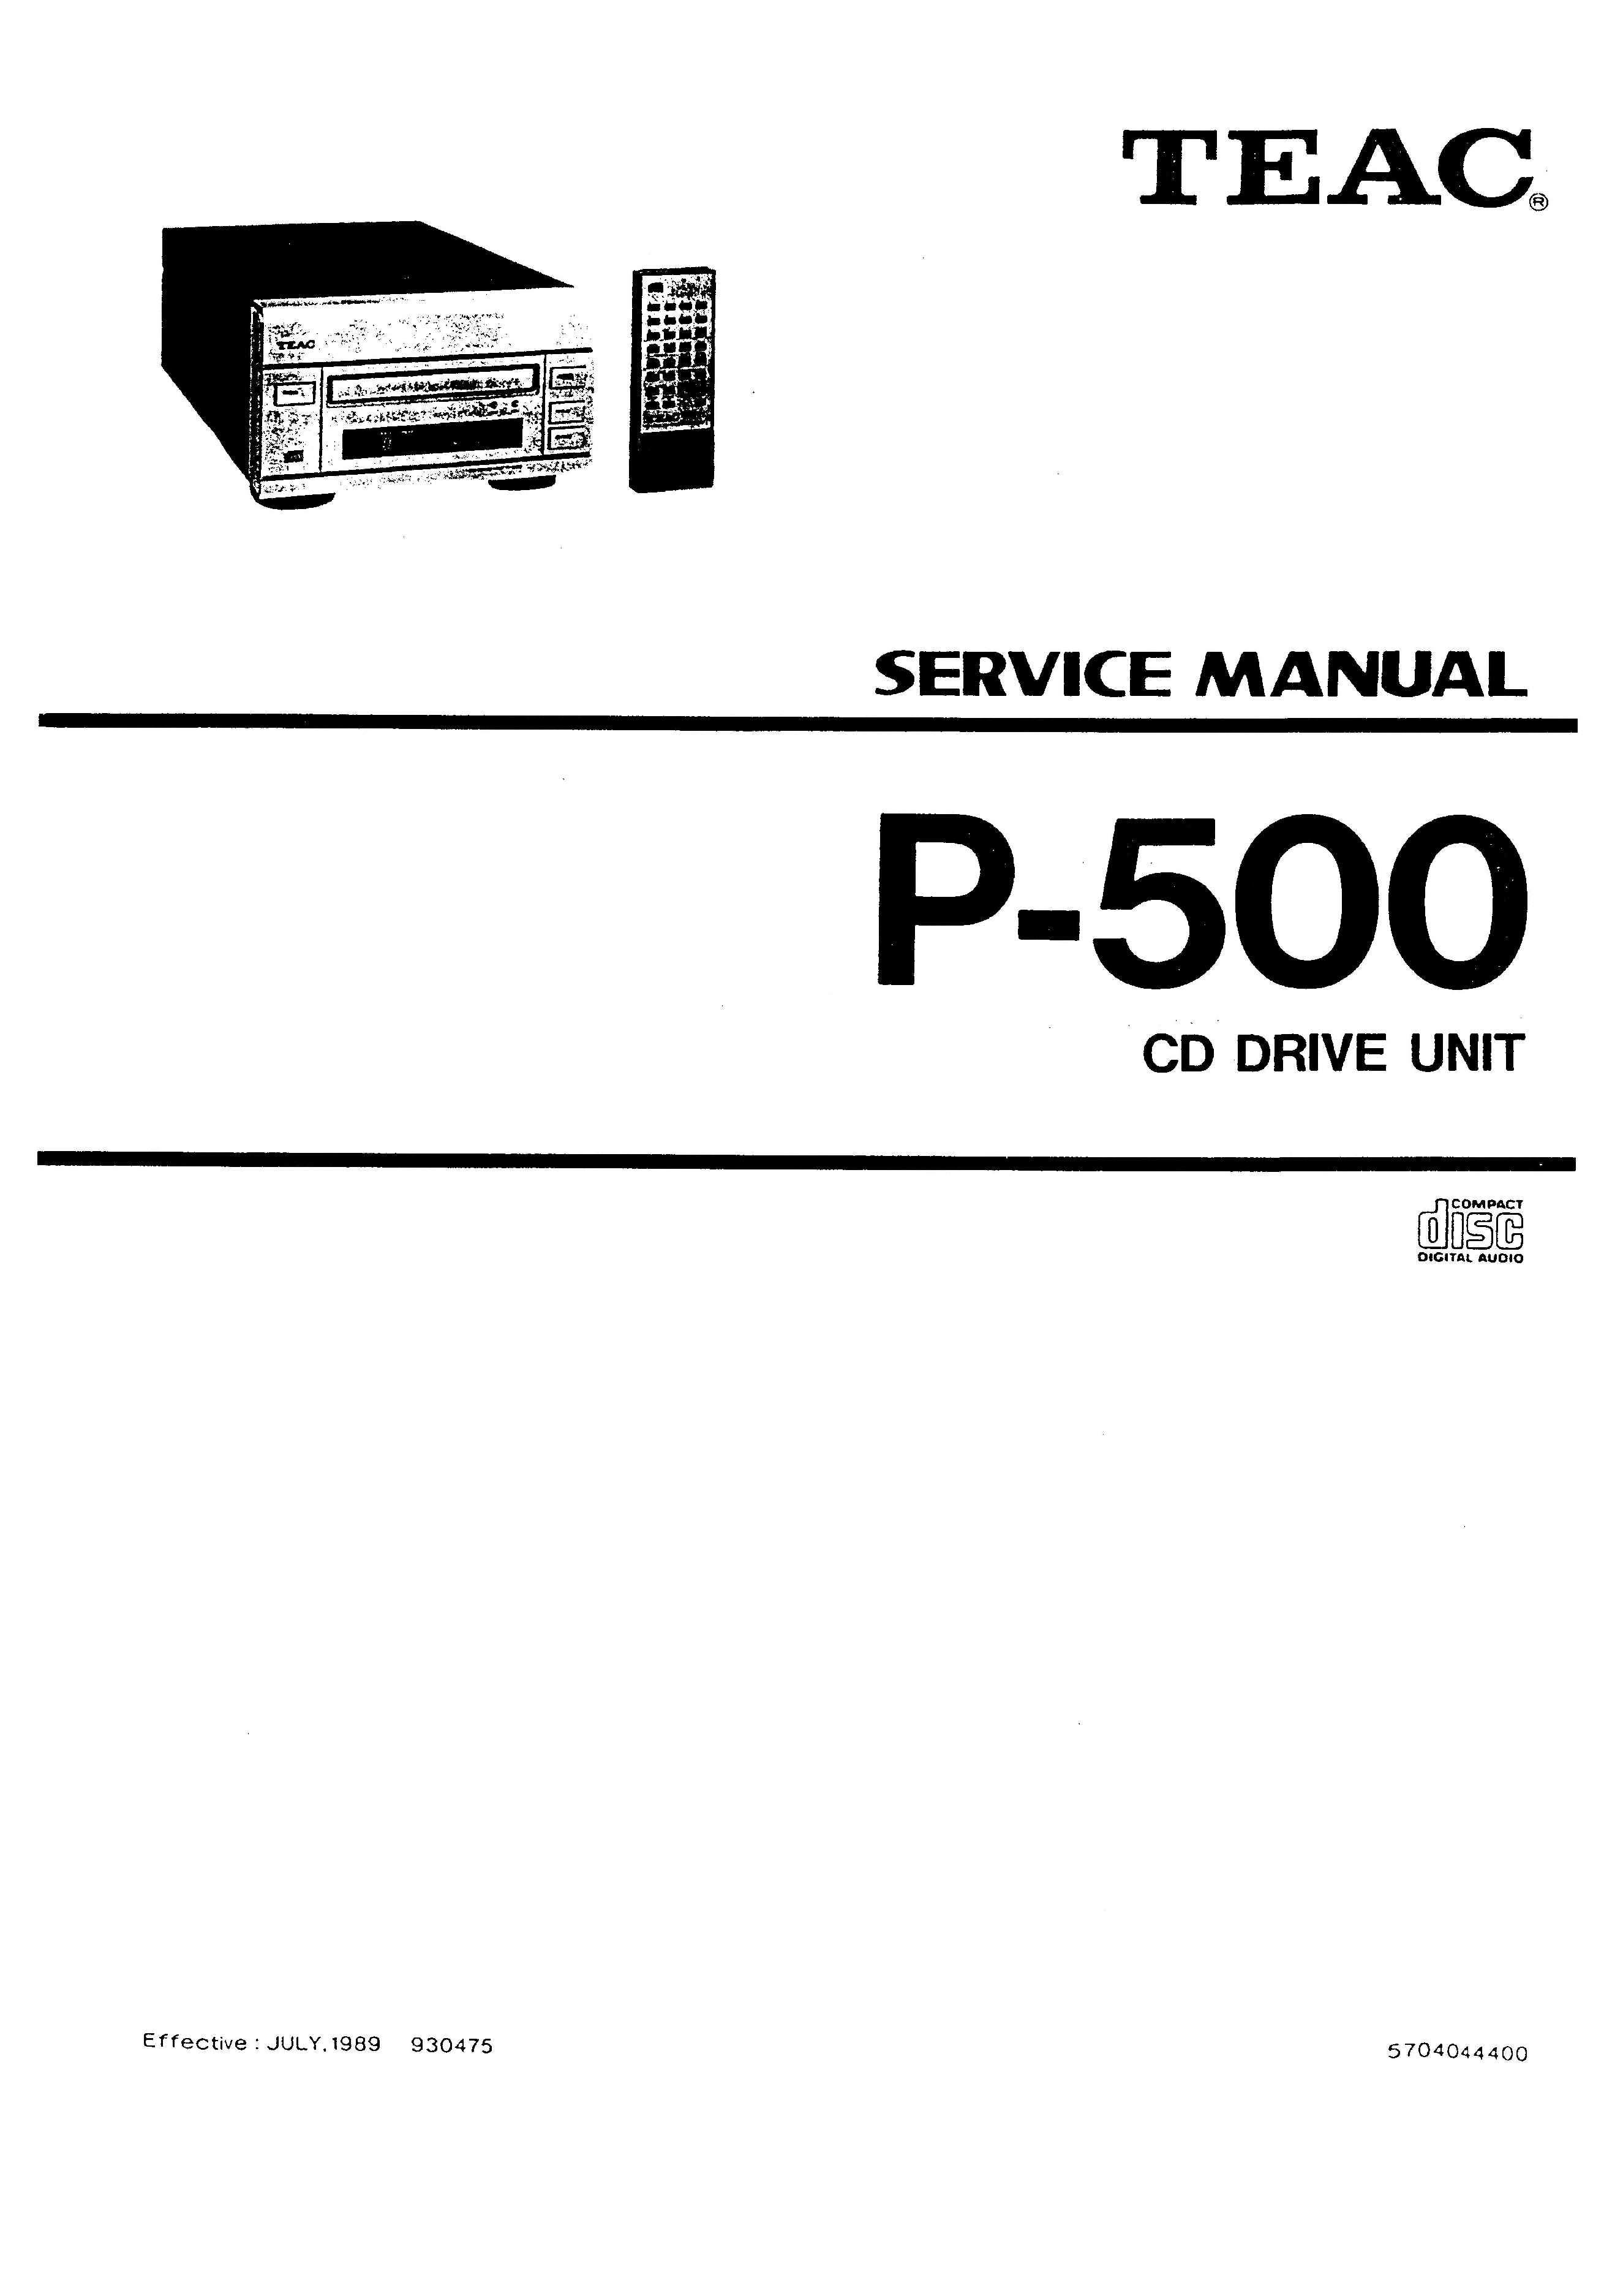 TEAC P-500 - Service Manual Immediate Download